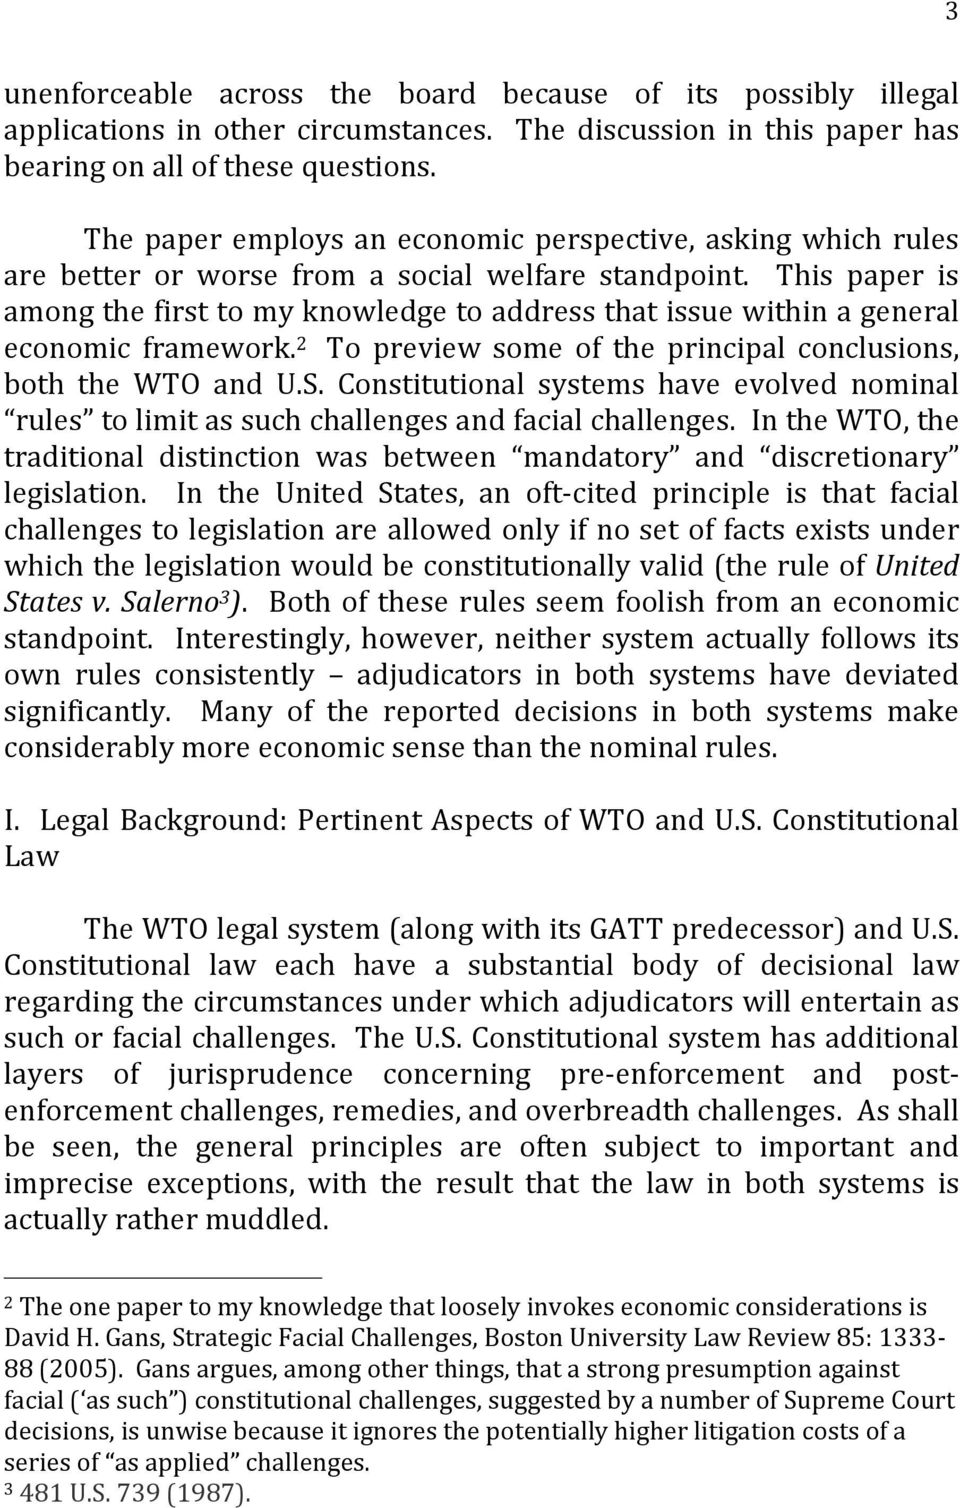 This paper is among the first to my knowledge to address that issue within a general economic framework. 2 To preview some of the principal conclusions, both the WTO and U.S.